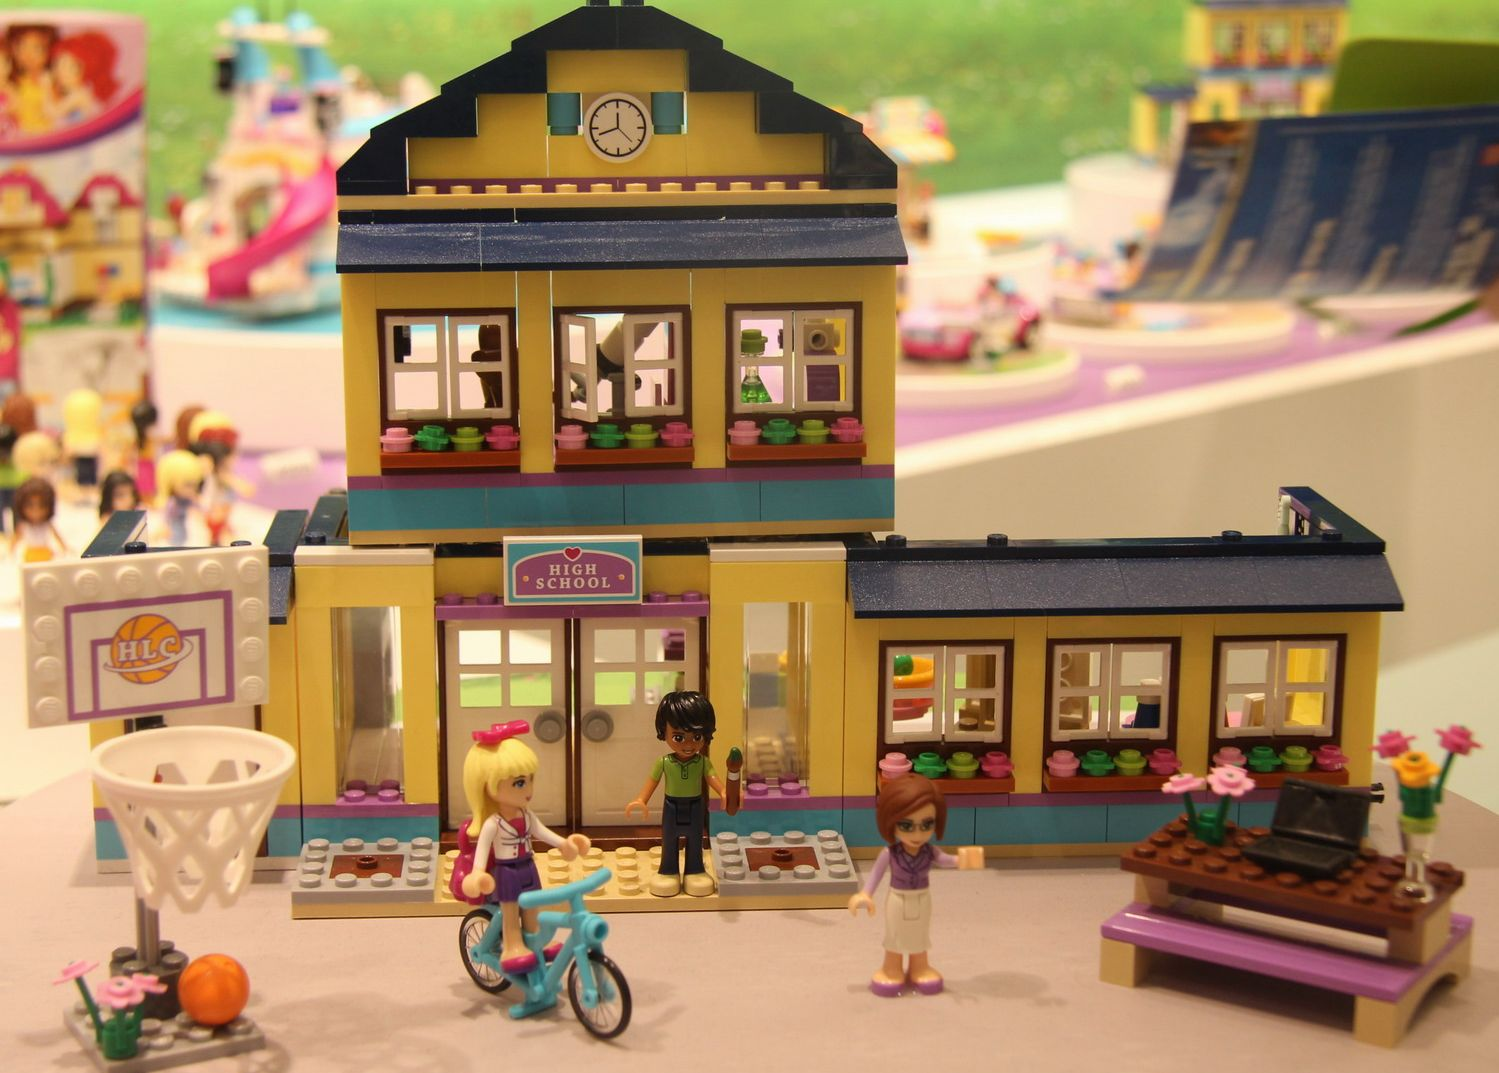 lego friends heartlake high - photo #11